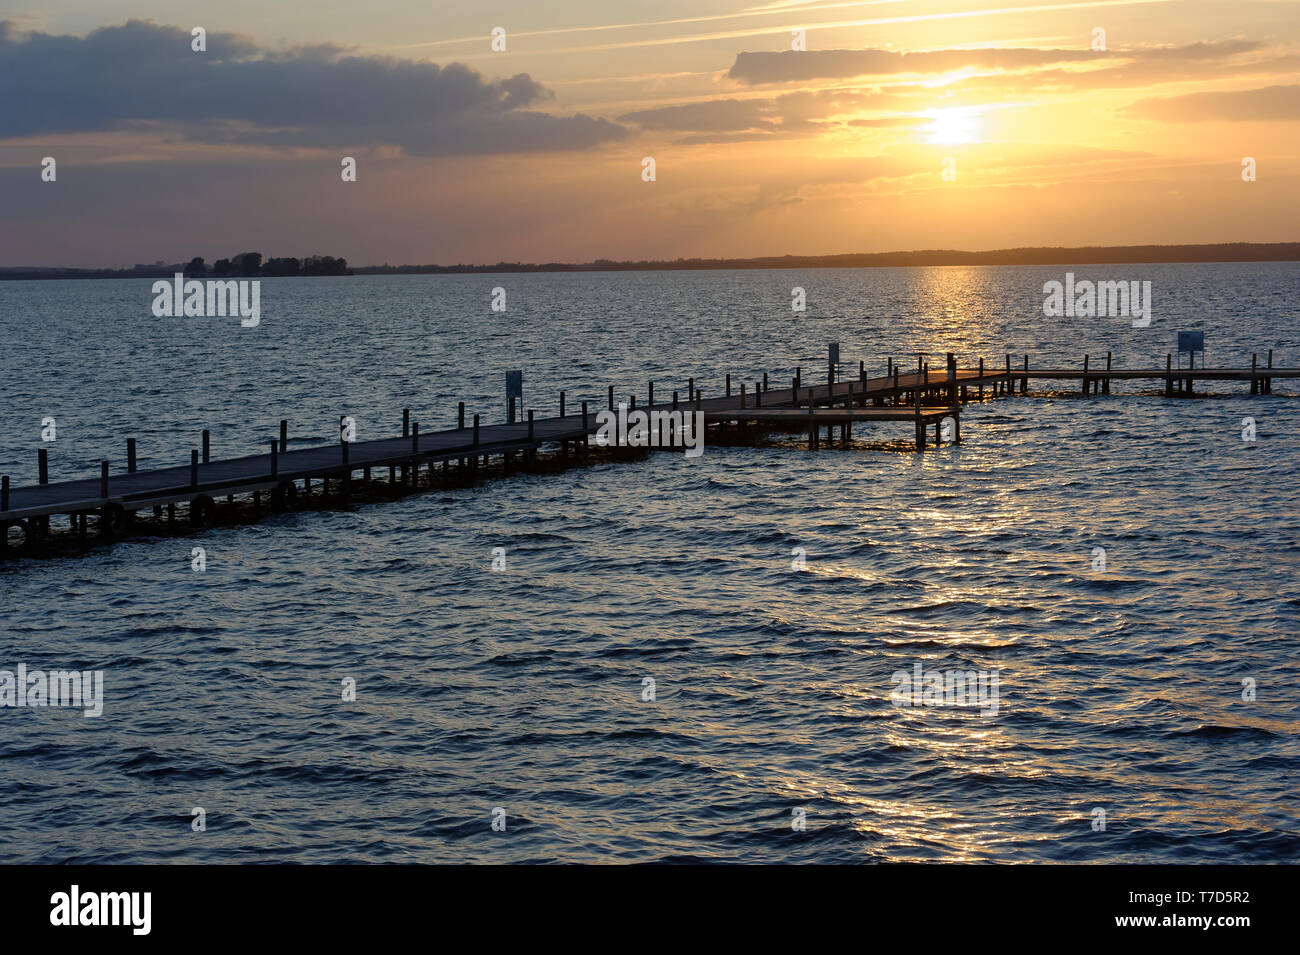 Sunset on the sea and Jetty - Stock Image